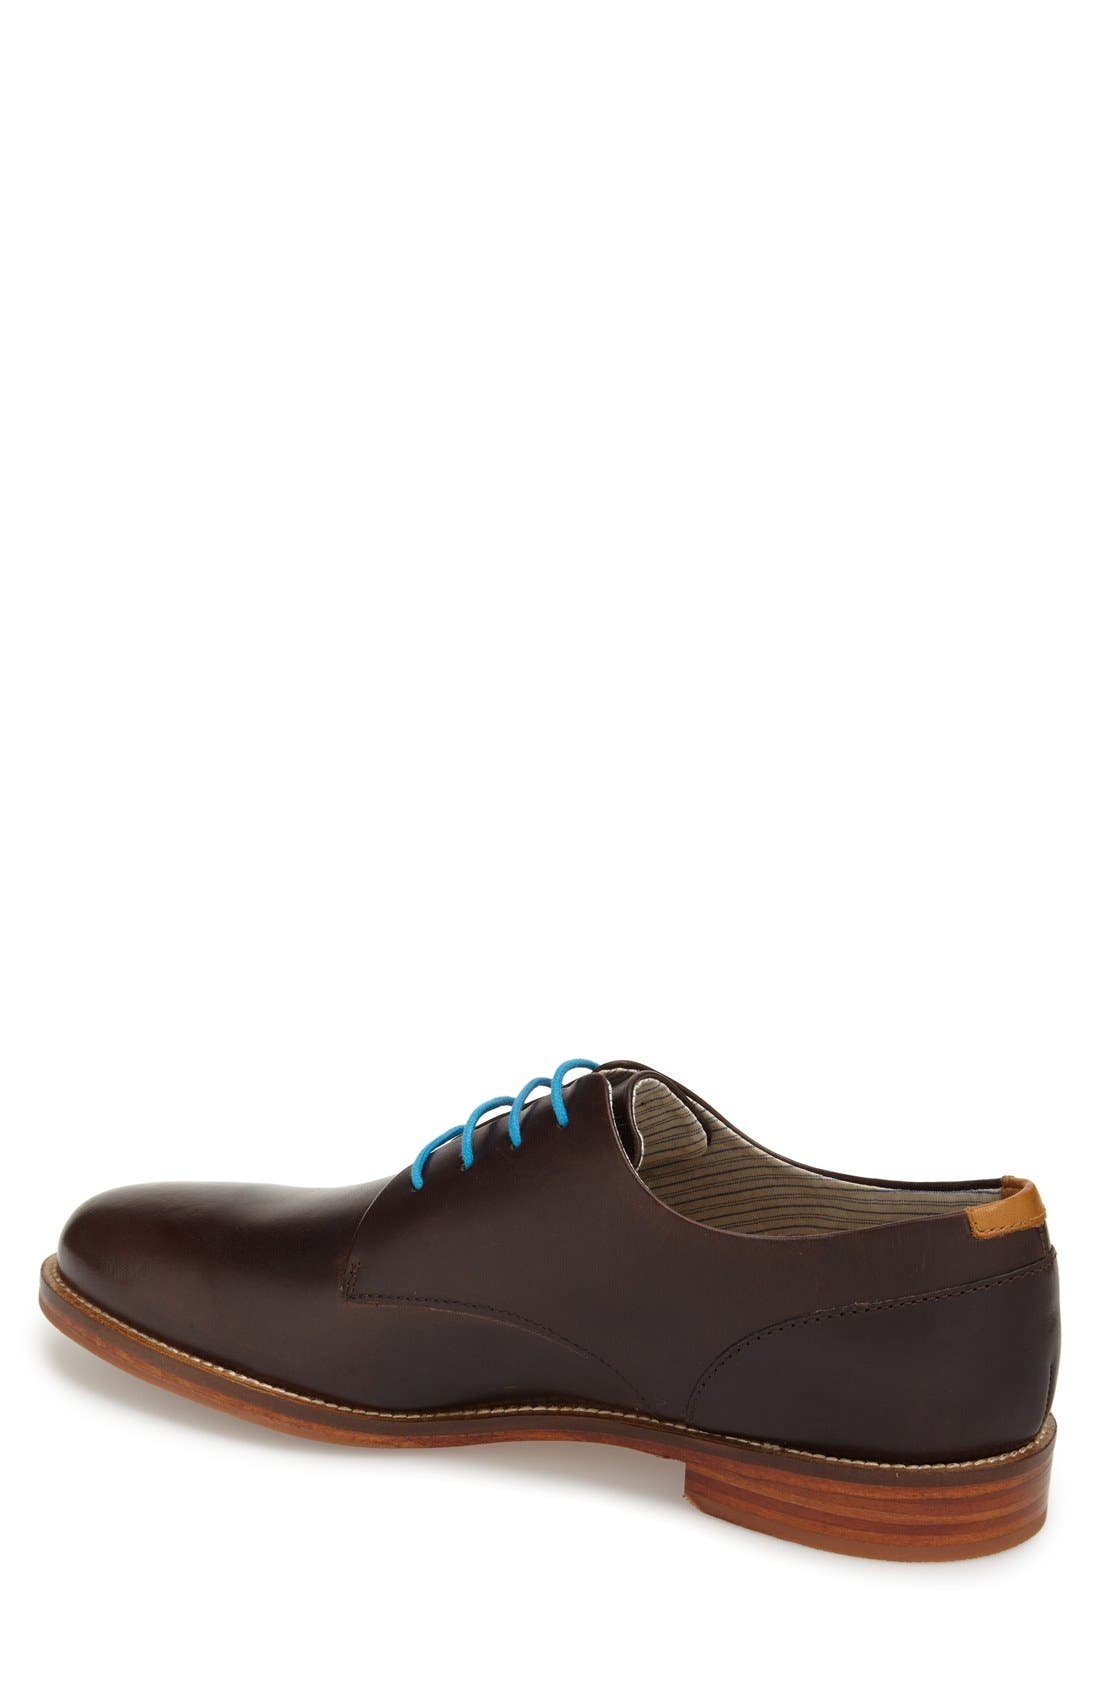 'William Plus' Plain Toe Derby,                             Alternate thumbnail 2, color,                             Dark Brown